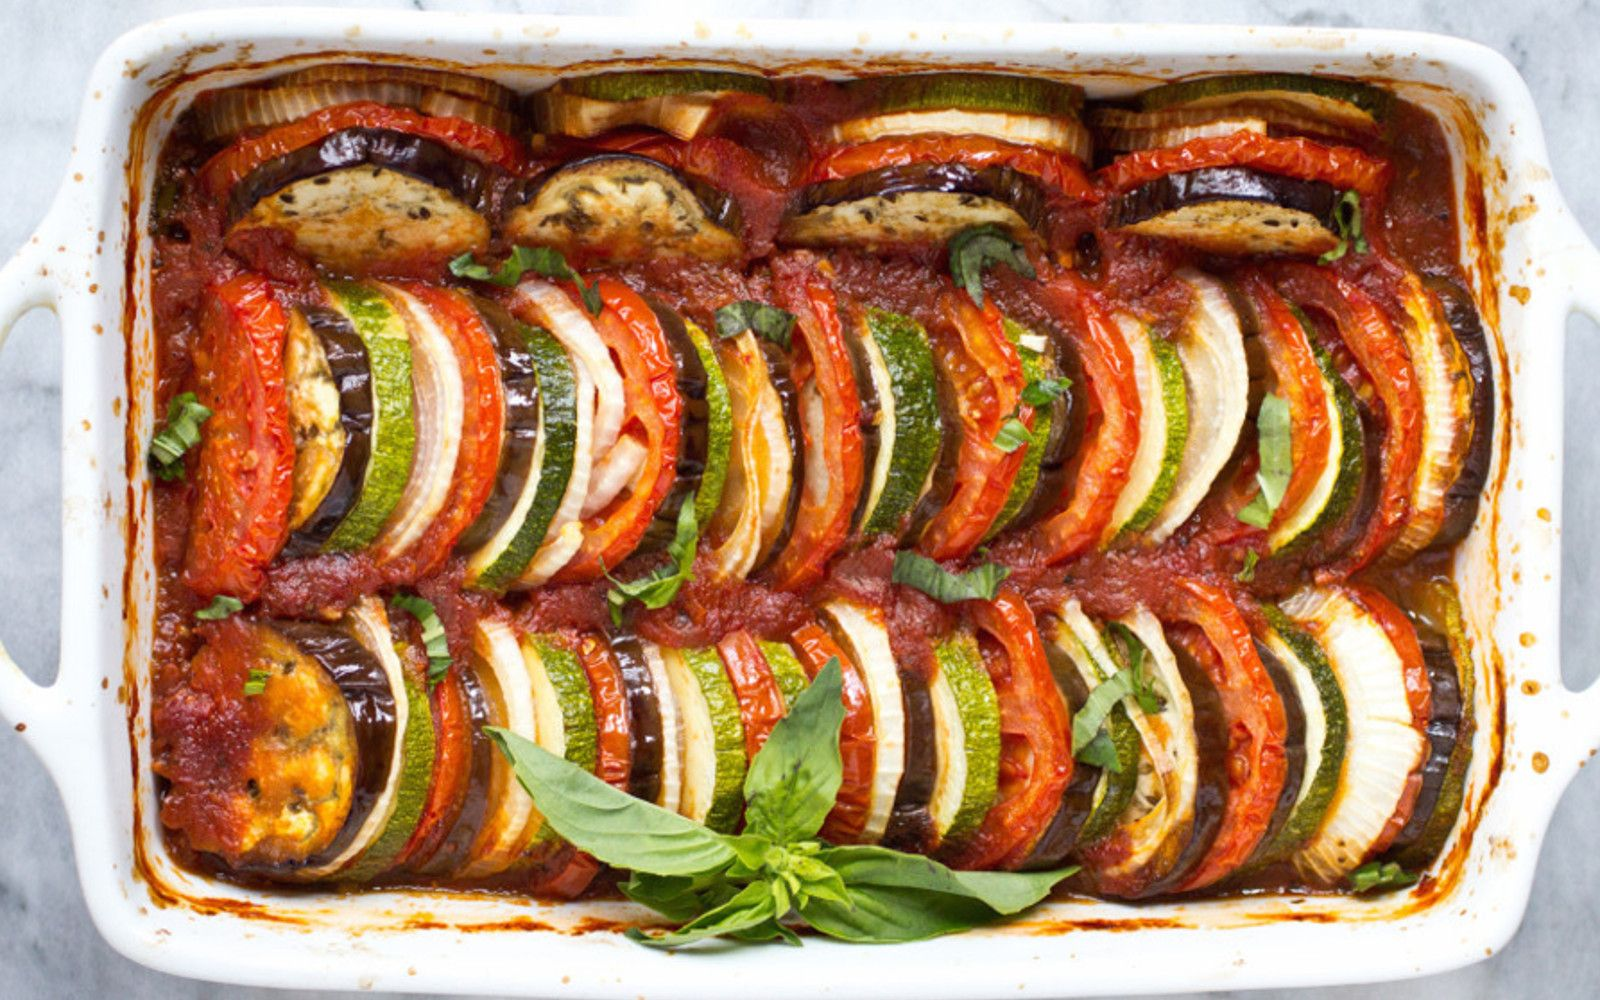 Ratatouille, a traditional dish hailing from the French countryside.